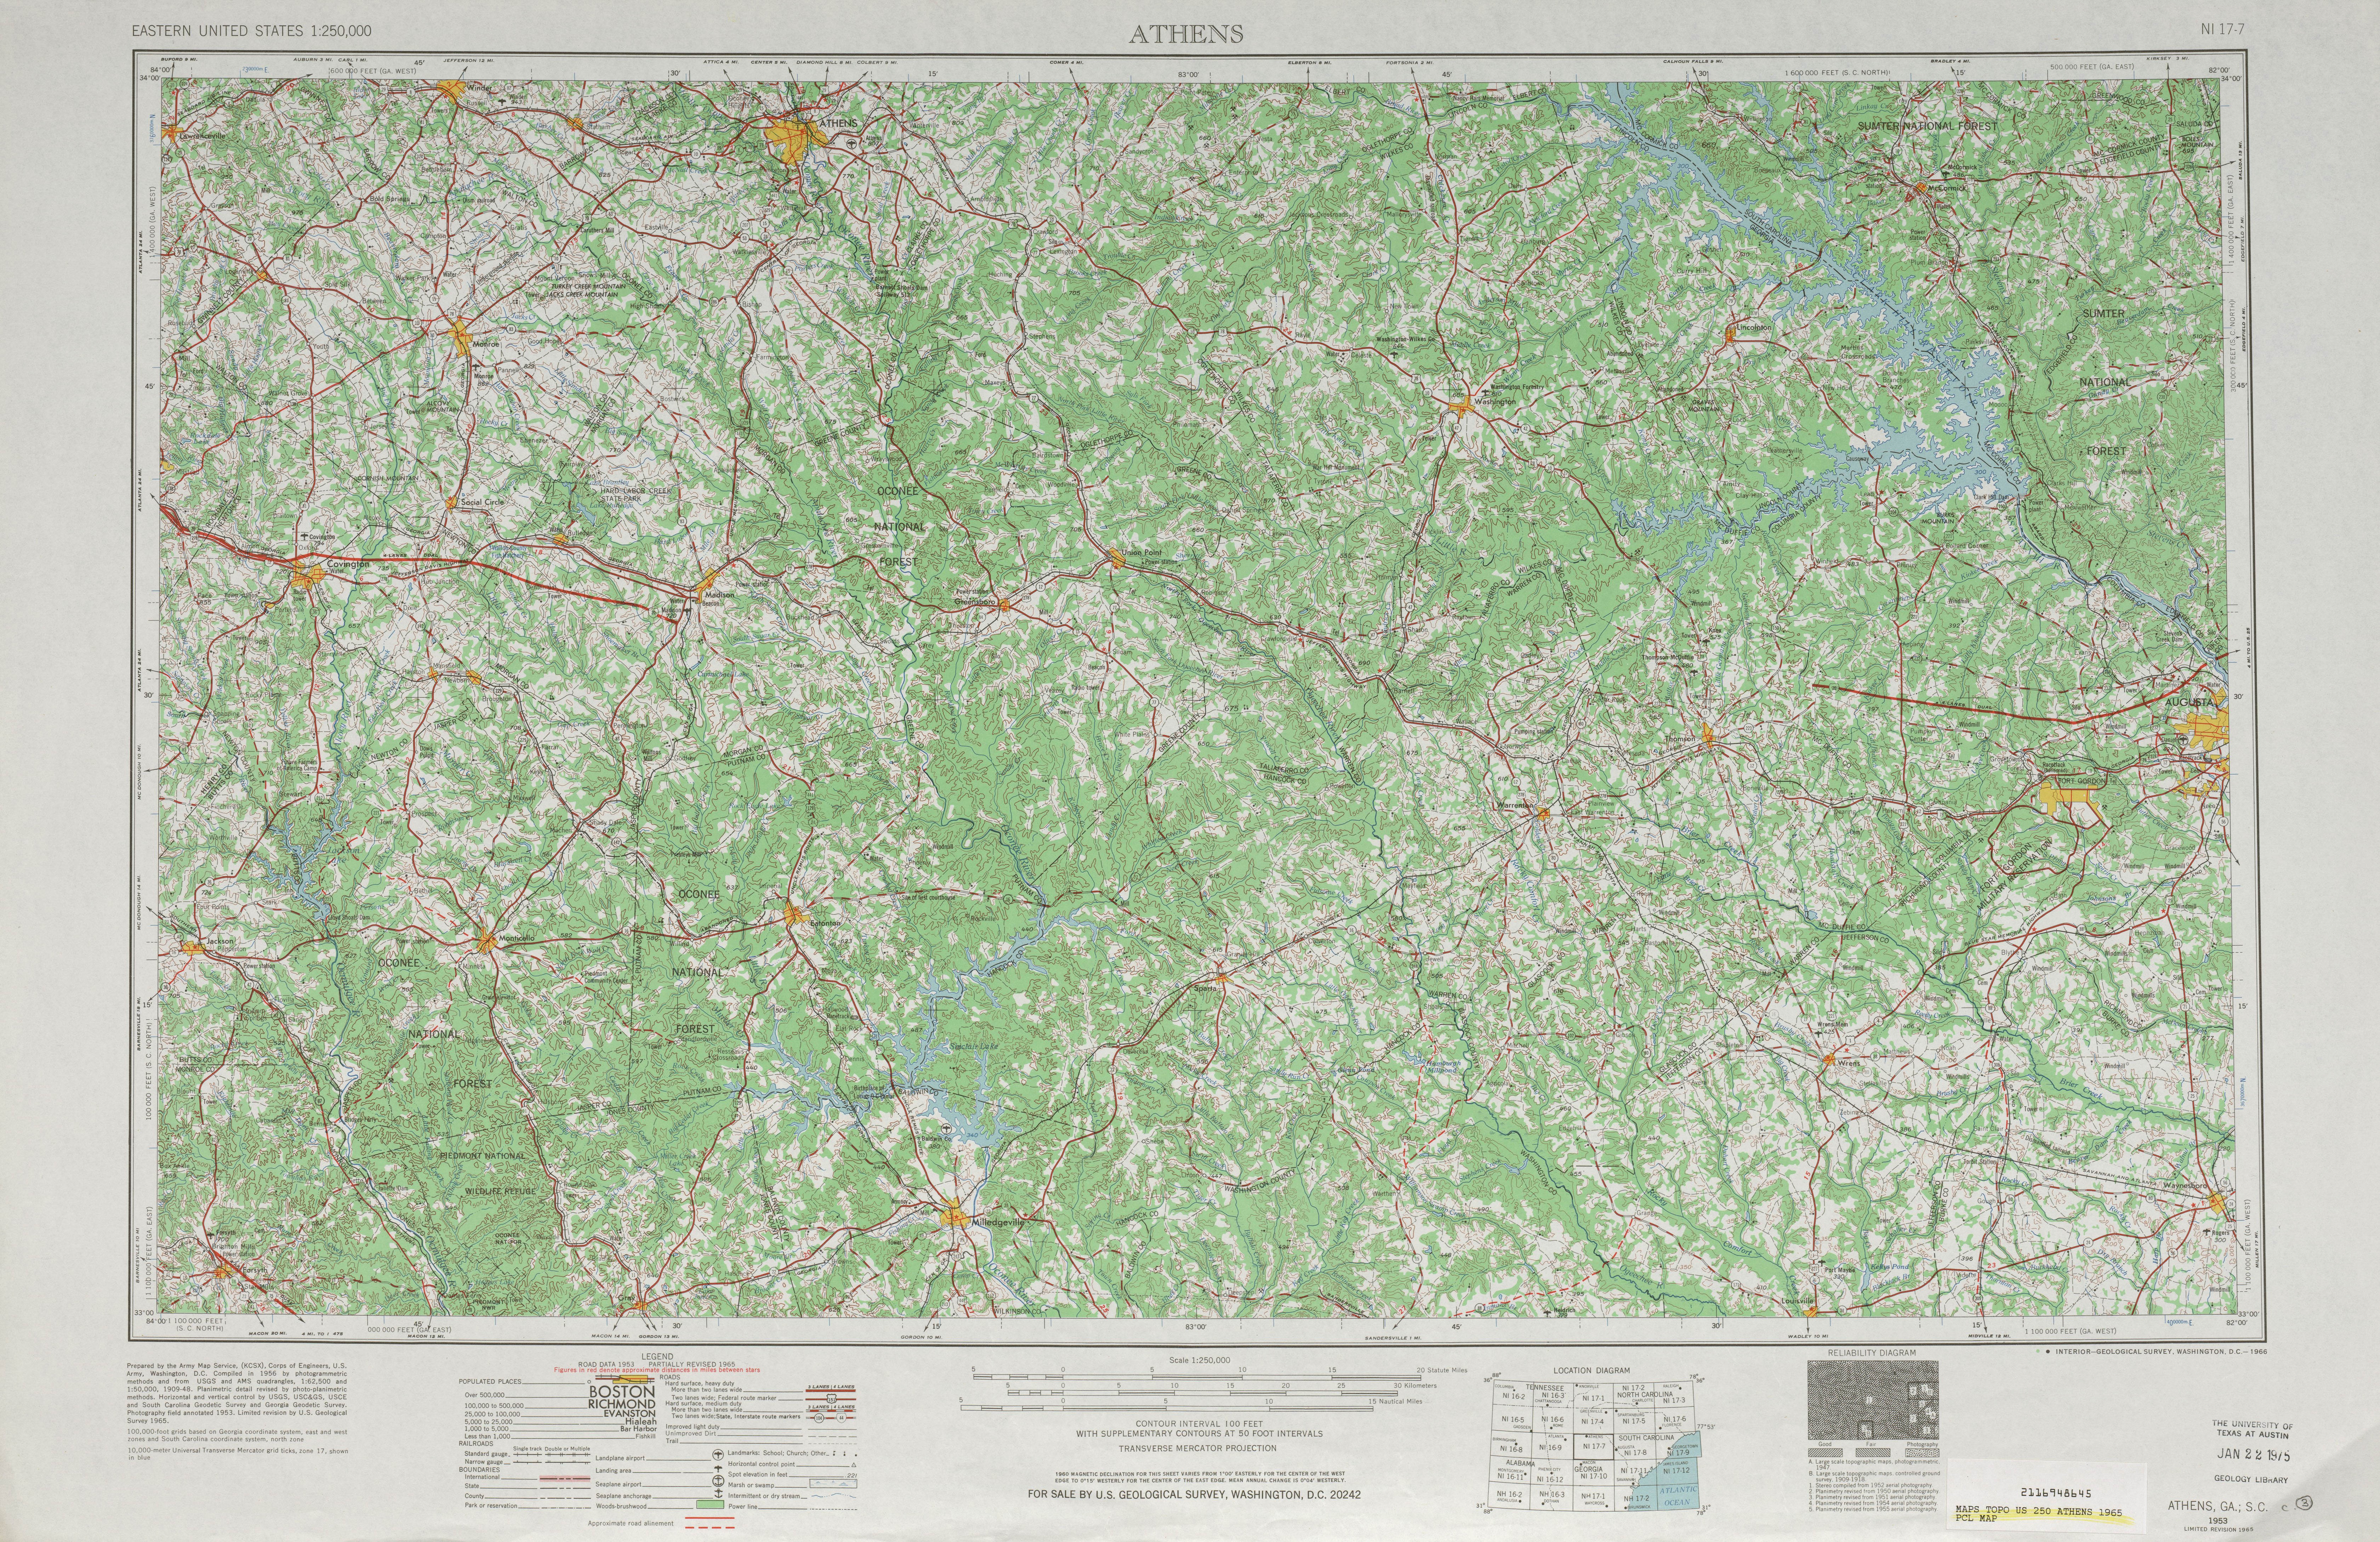 Athens Topographic Map Sheet, United States 1965